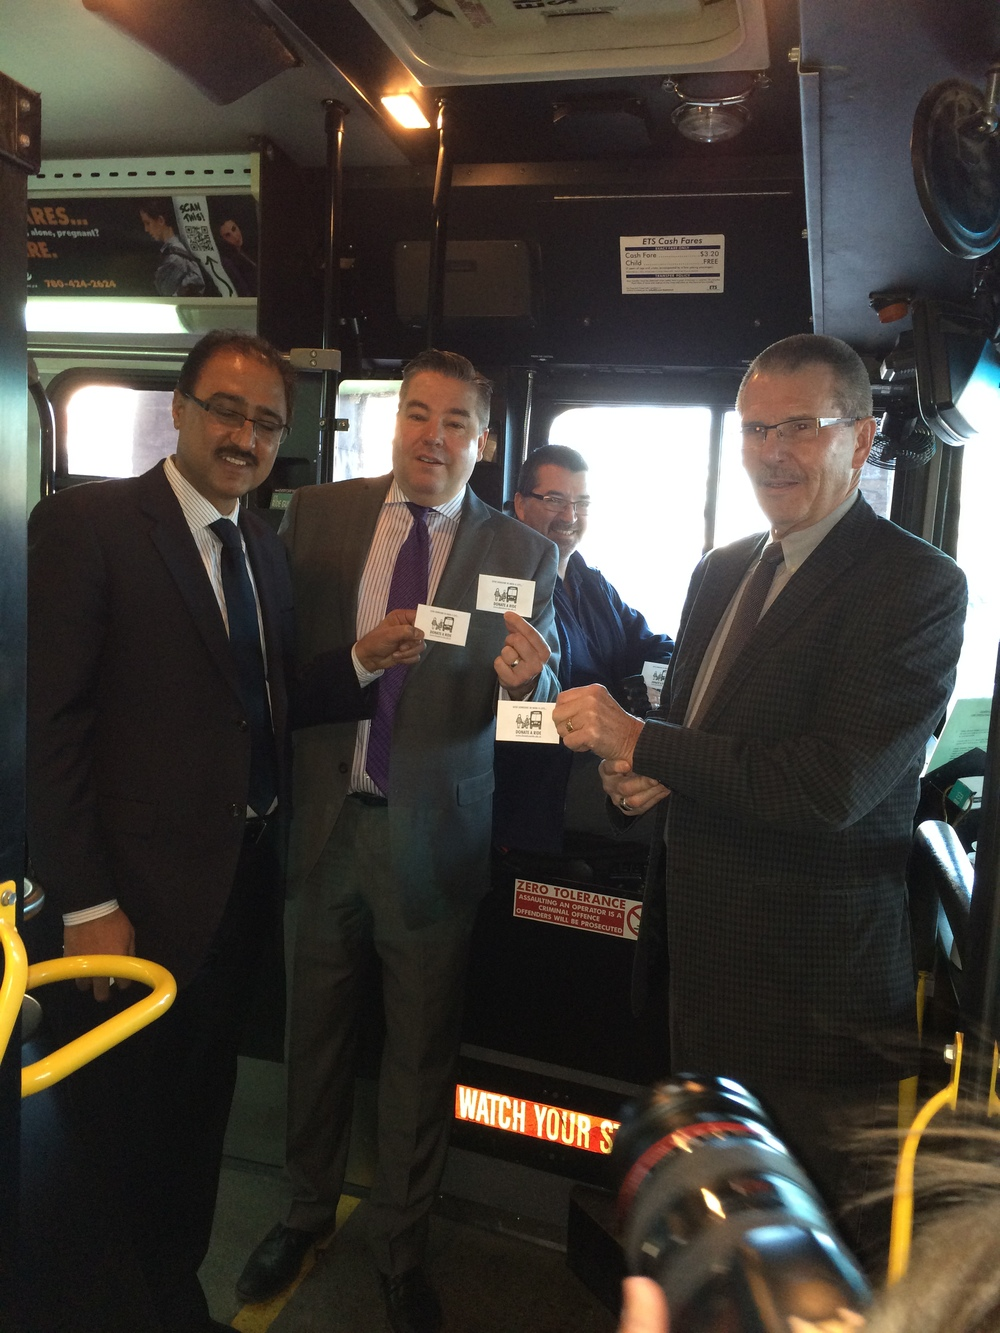 Councillors Anderson, Loken, and Sohi hop aboard an ETS bus to make a ticket donation for Donate-A-Ride.